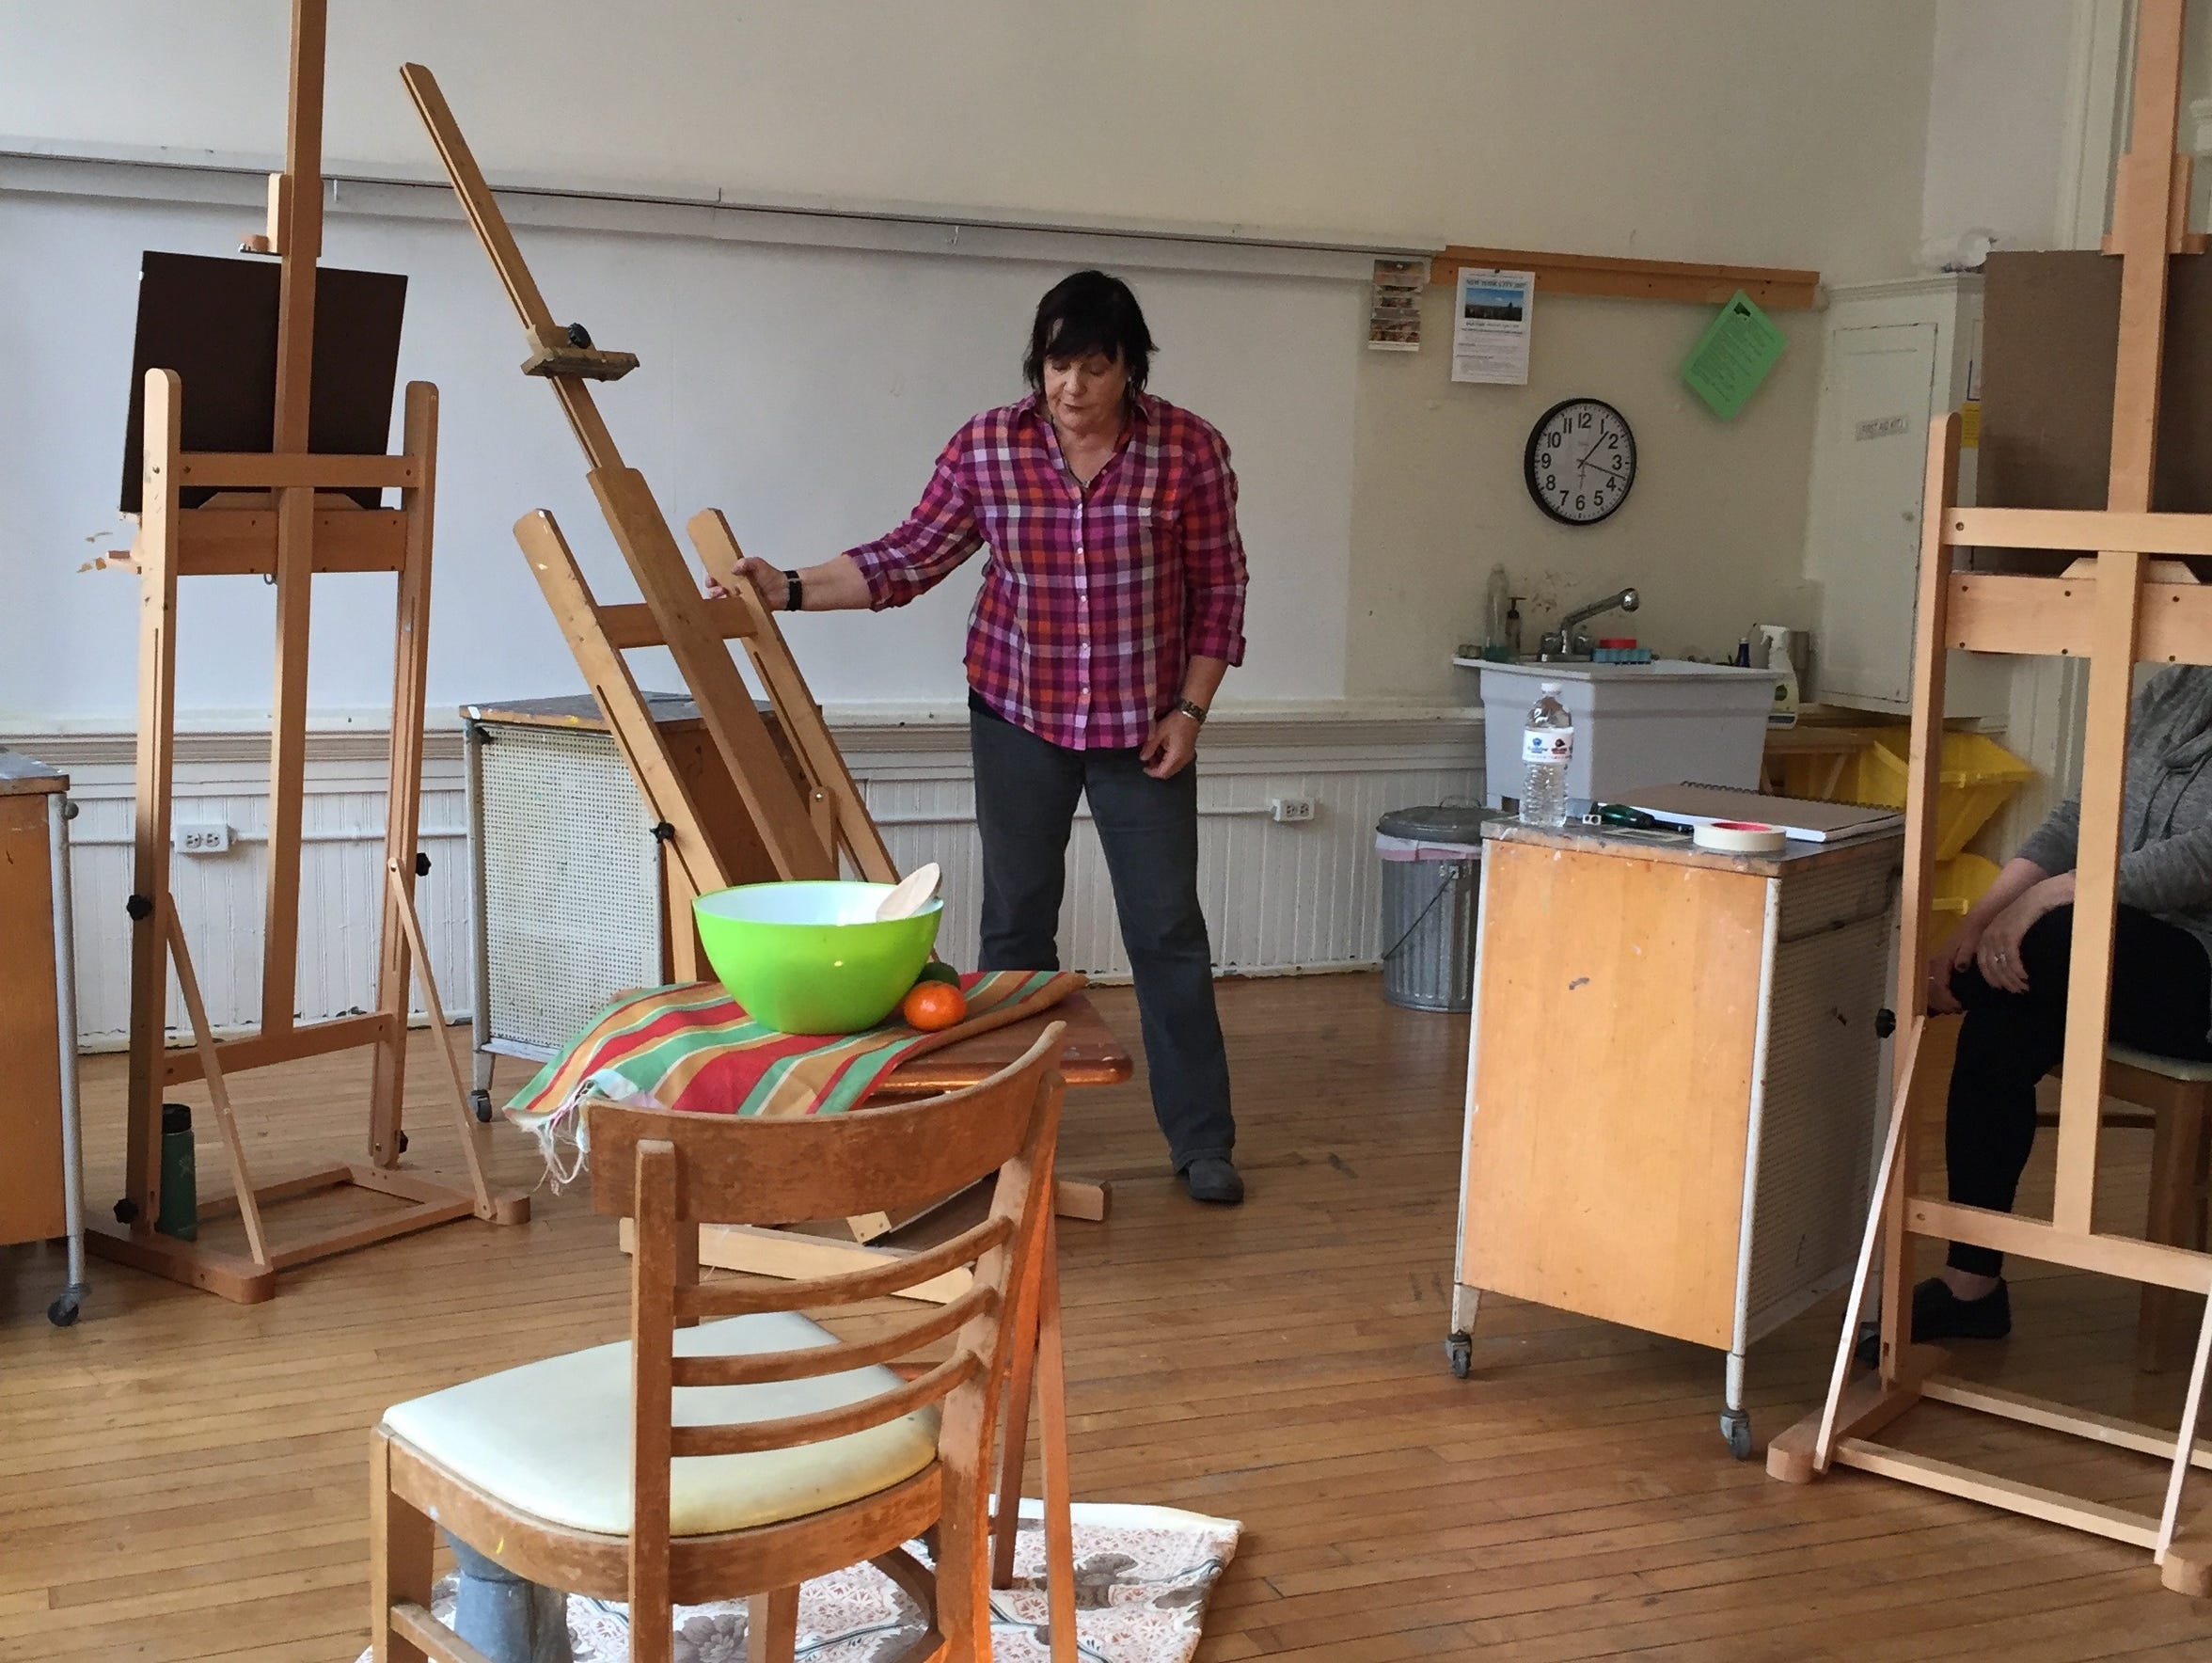 Art instructor Janly Jaggard teaches students how to